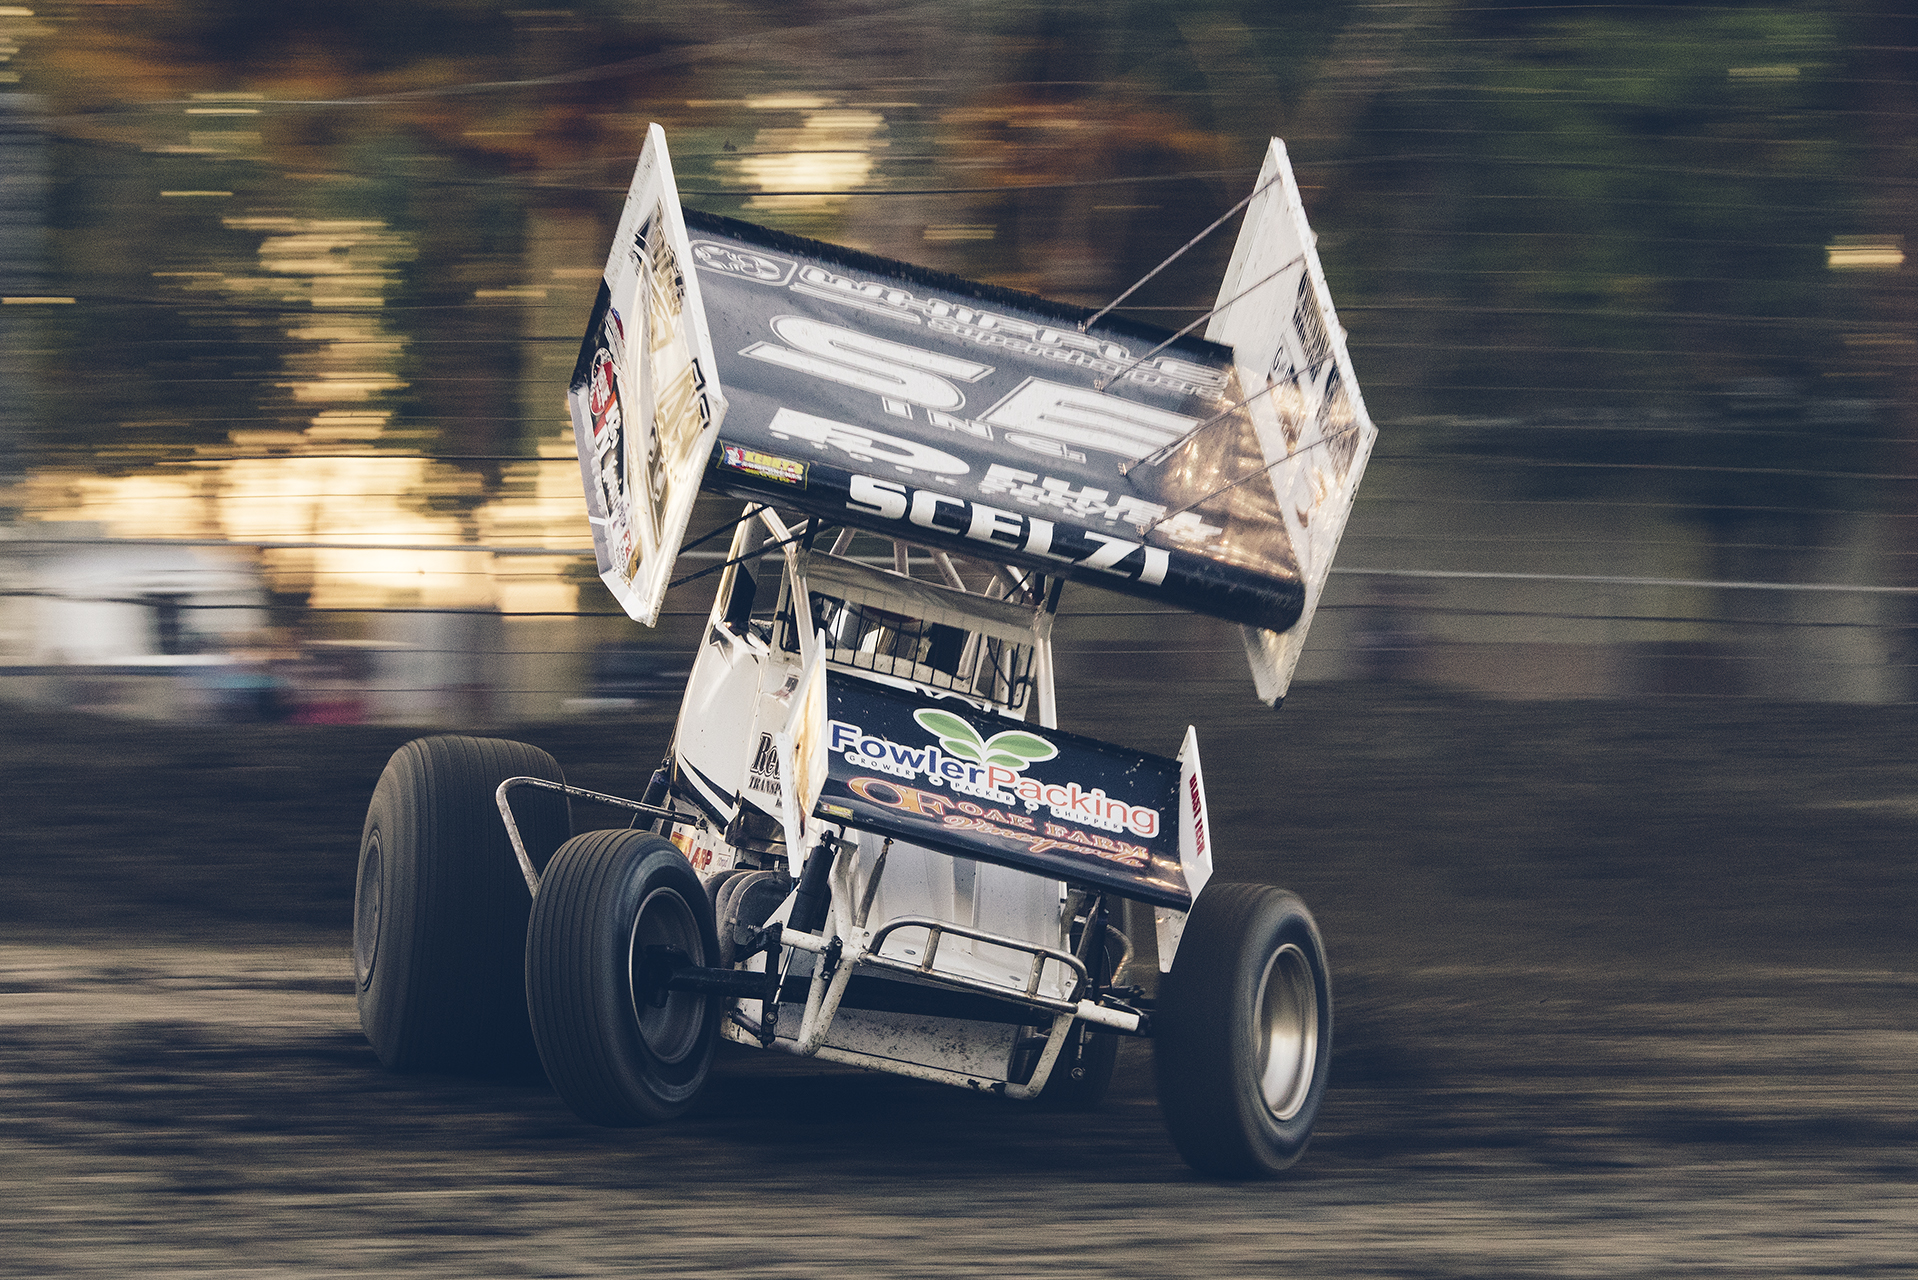 Dominic makes a qualifying lap at Hanford, 2015.